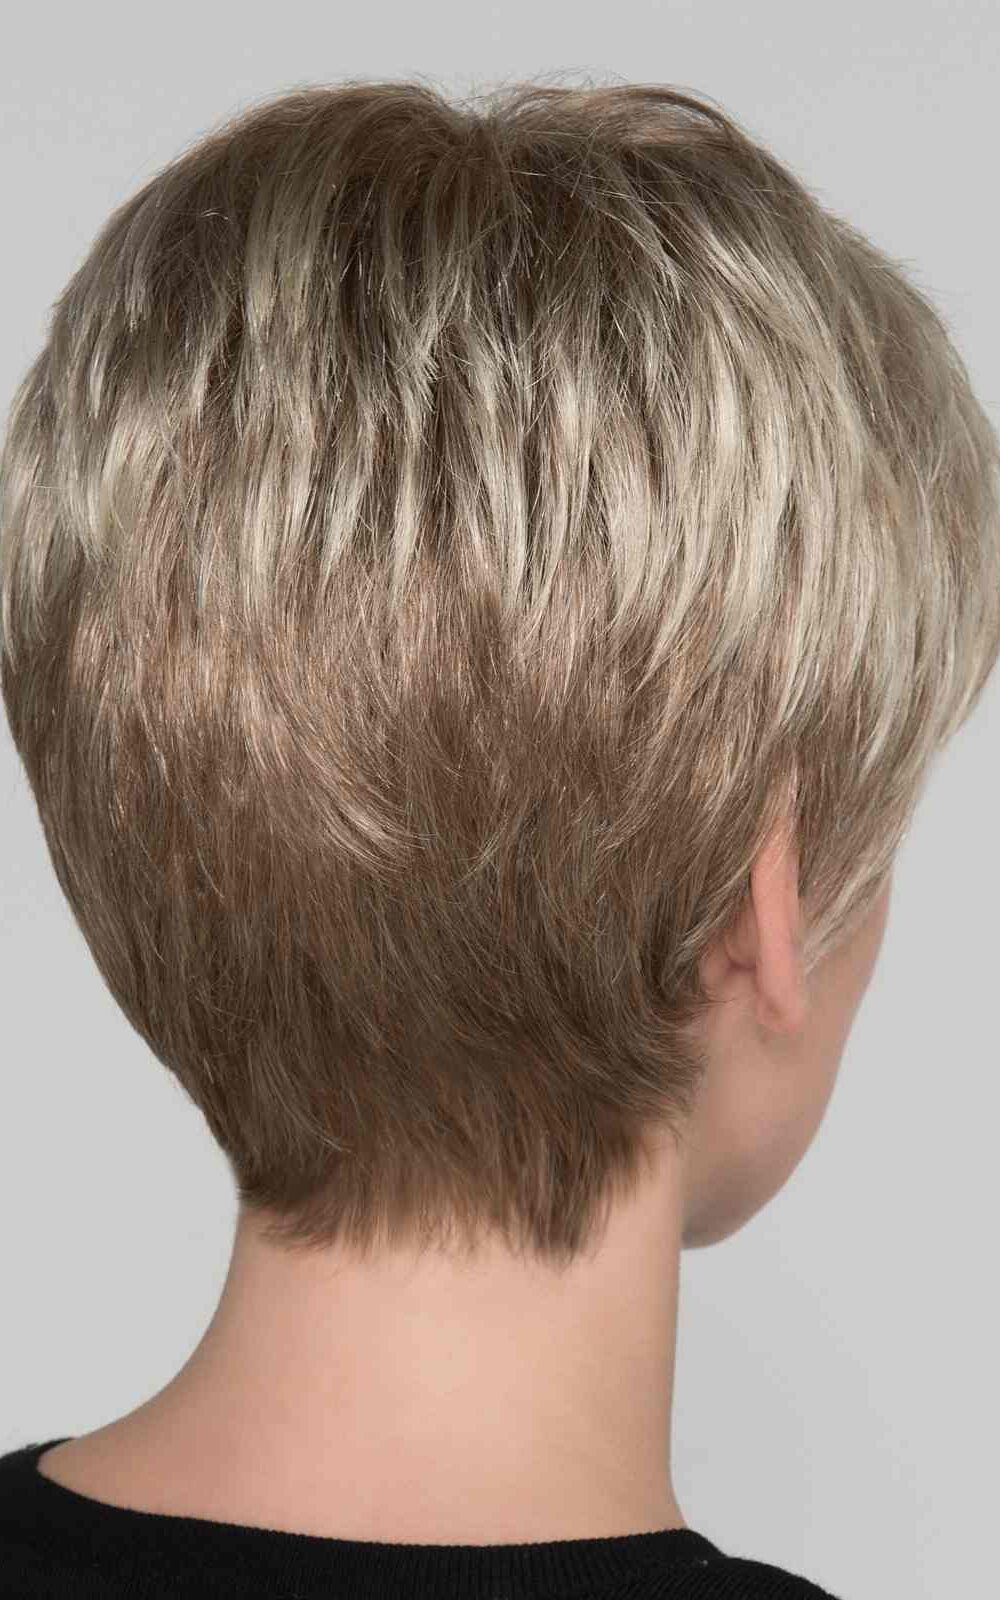 Carol | Snug and secure fit along with the most natural looking head of hair available | Elly-K.com.au